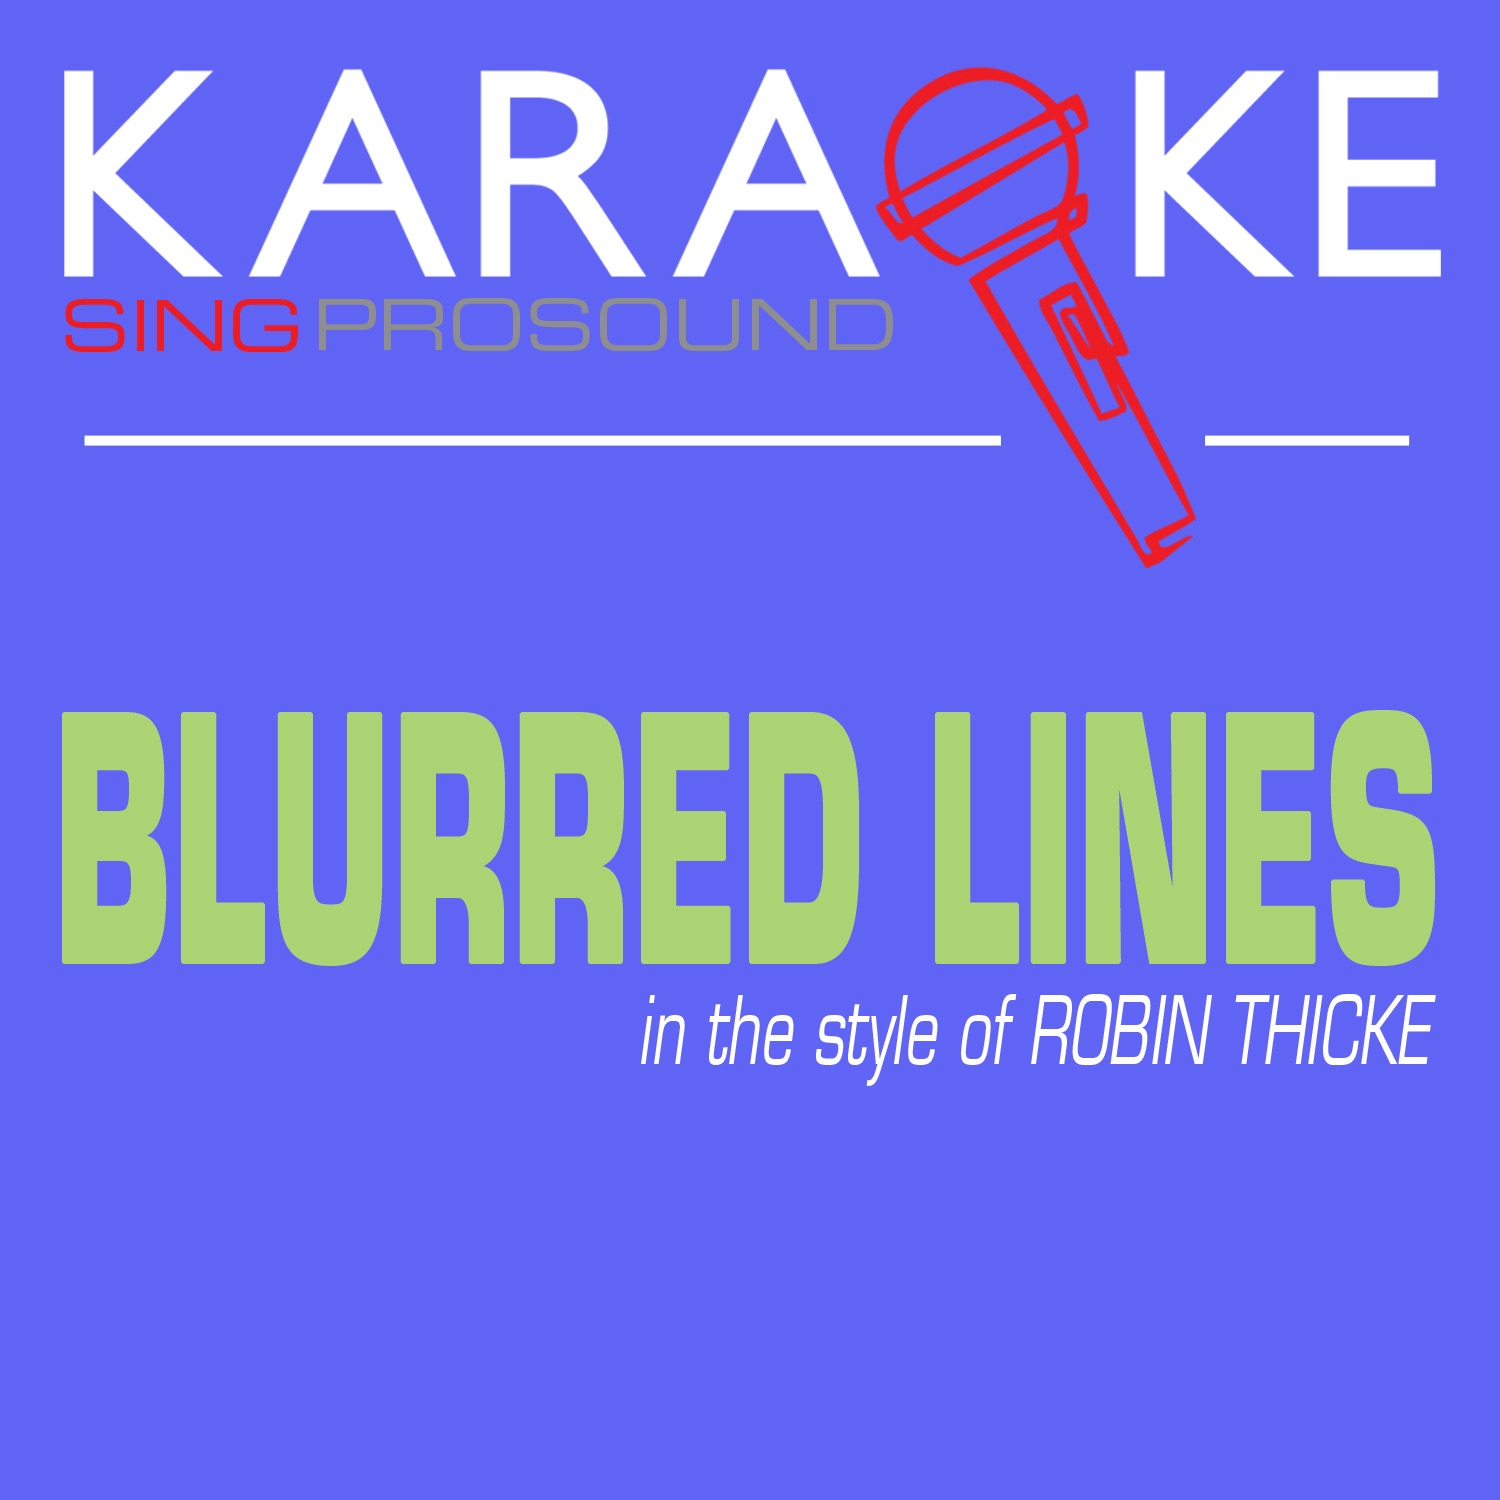 Blurred Lines (In the Style of Robin Thicke) [Karaoke Version] - Single